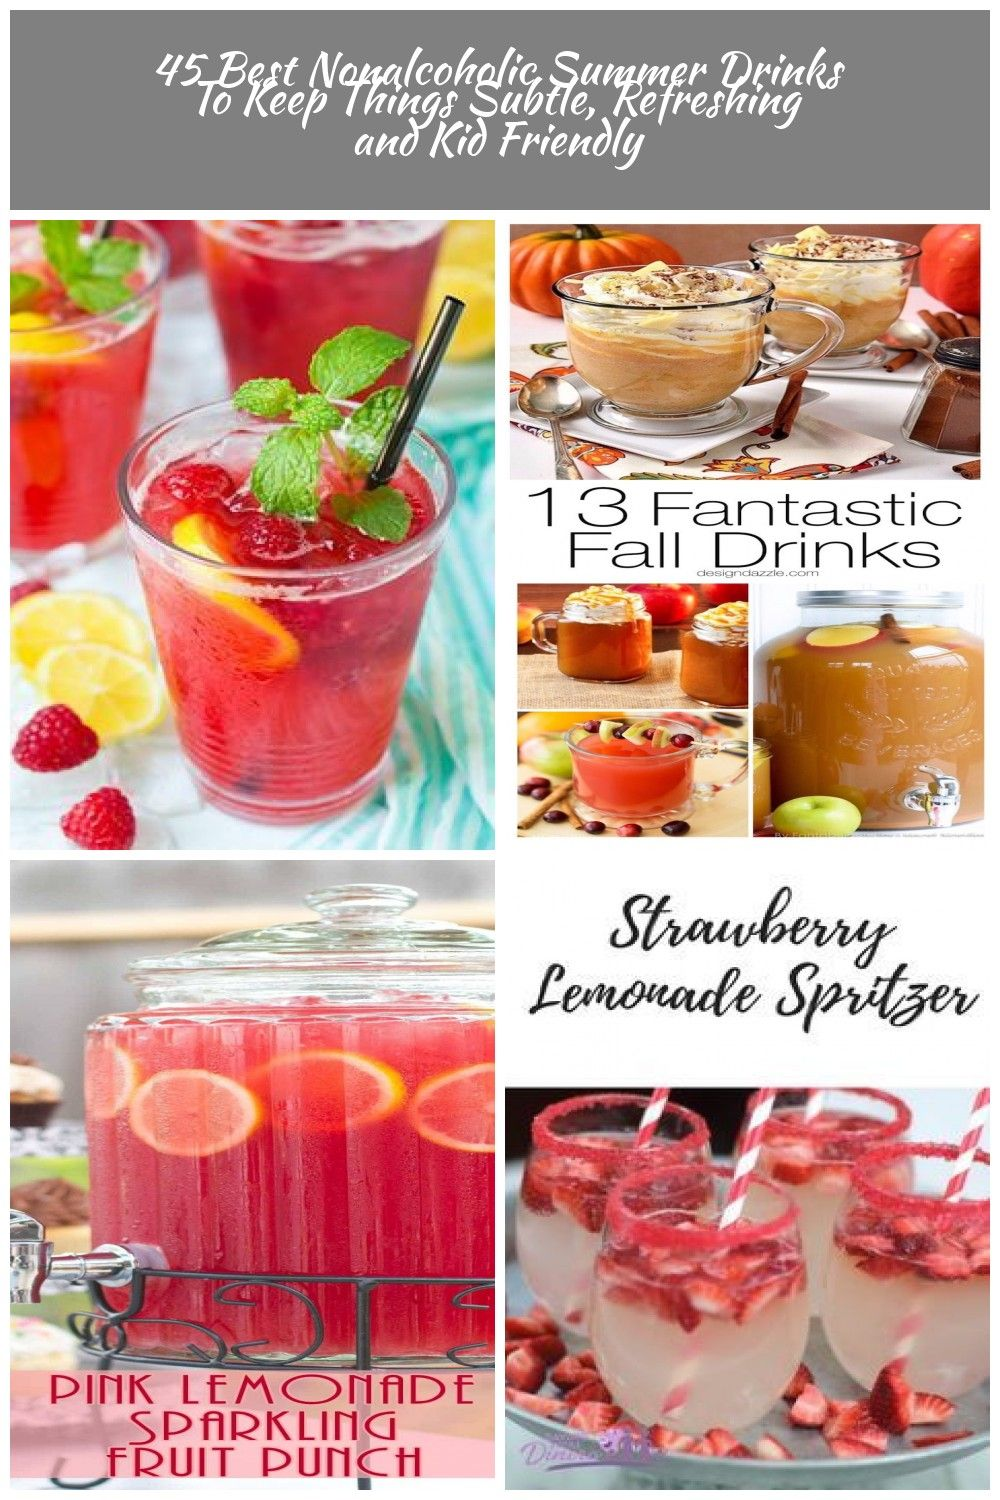 45 Best Nonalcoholic Summer Drinks To Keep Things Refreshing and Kid Friendly drinks Nonalcoholic 45 Best Nonalcoholic Summer Drinks To Keep Things Subtle, Refreshing and Kid Friendly #nonalcoholicsummerdrinks